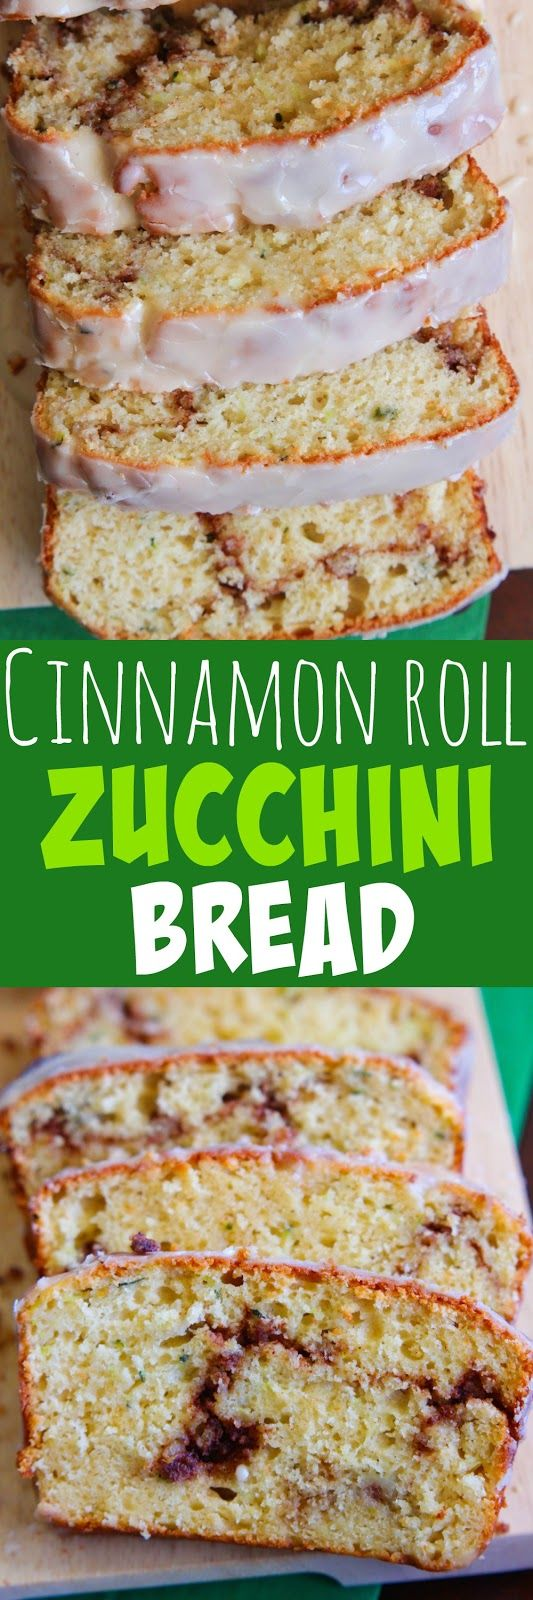 Eat Cake For Dinner: Cinnamon Roll Zucchini Bread